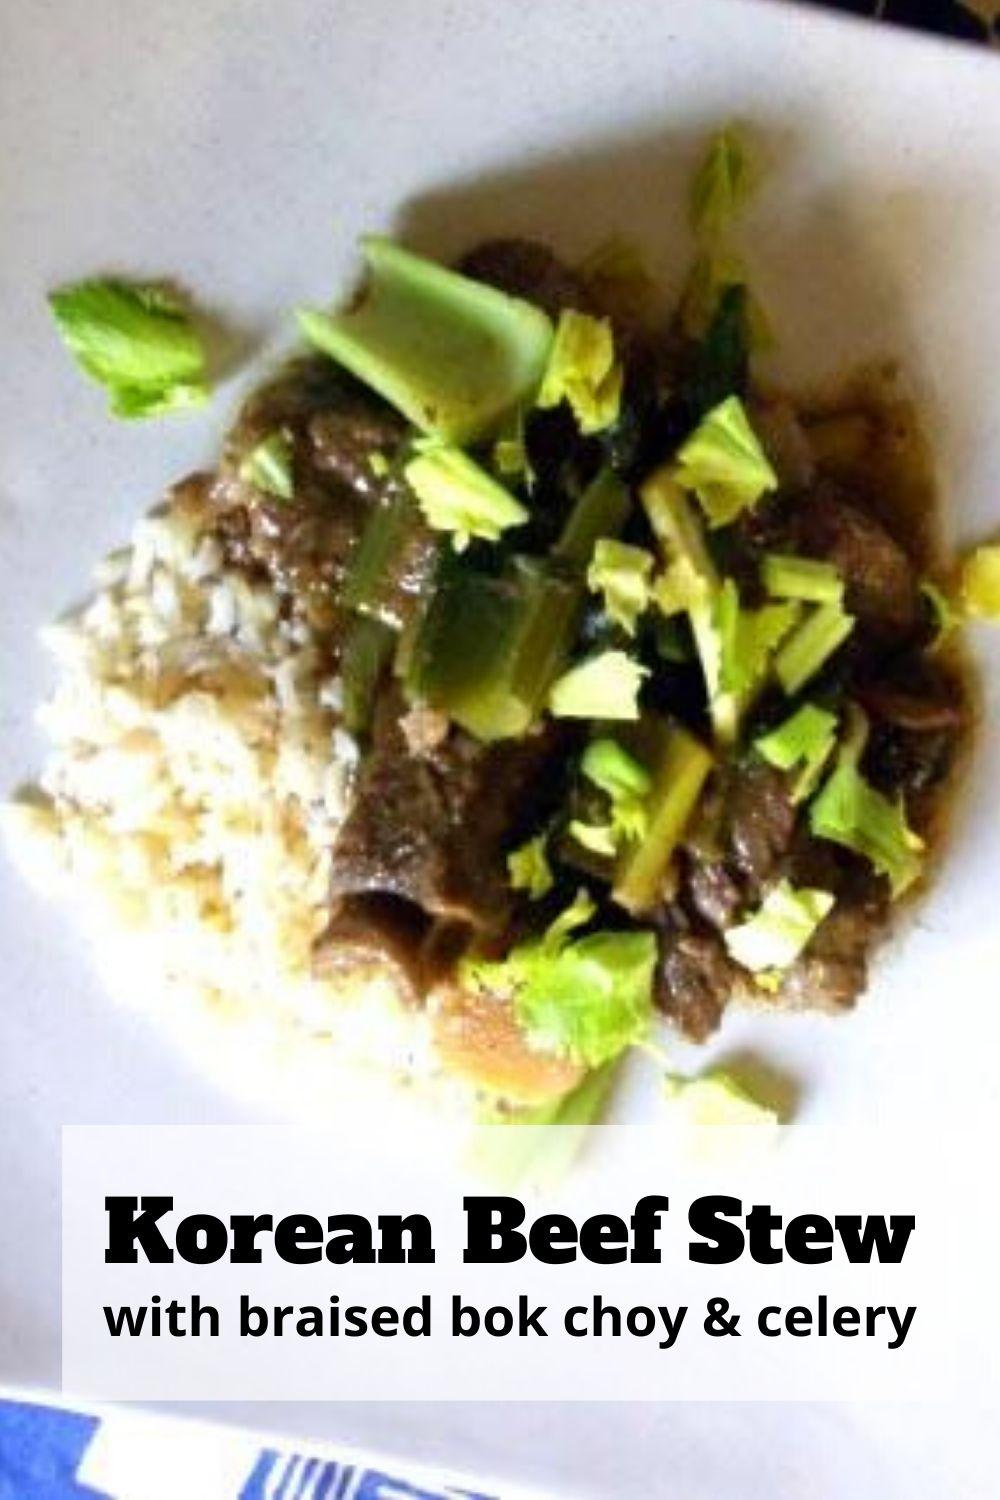 Korean Beef Stew with Braised Bok Choy and Celery